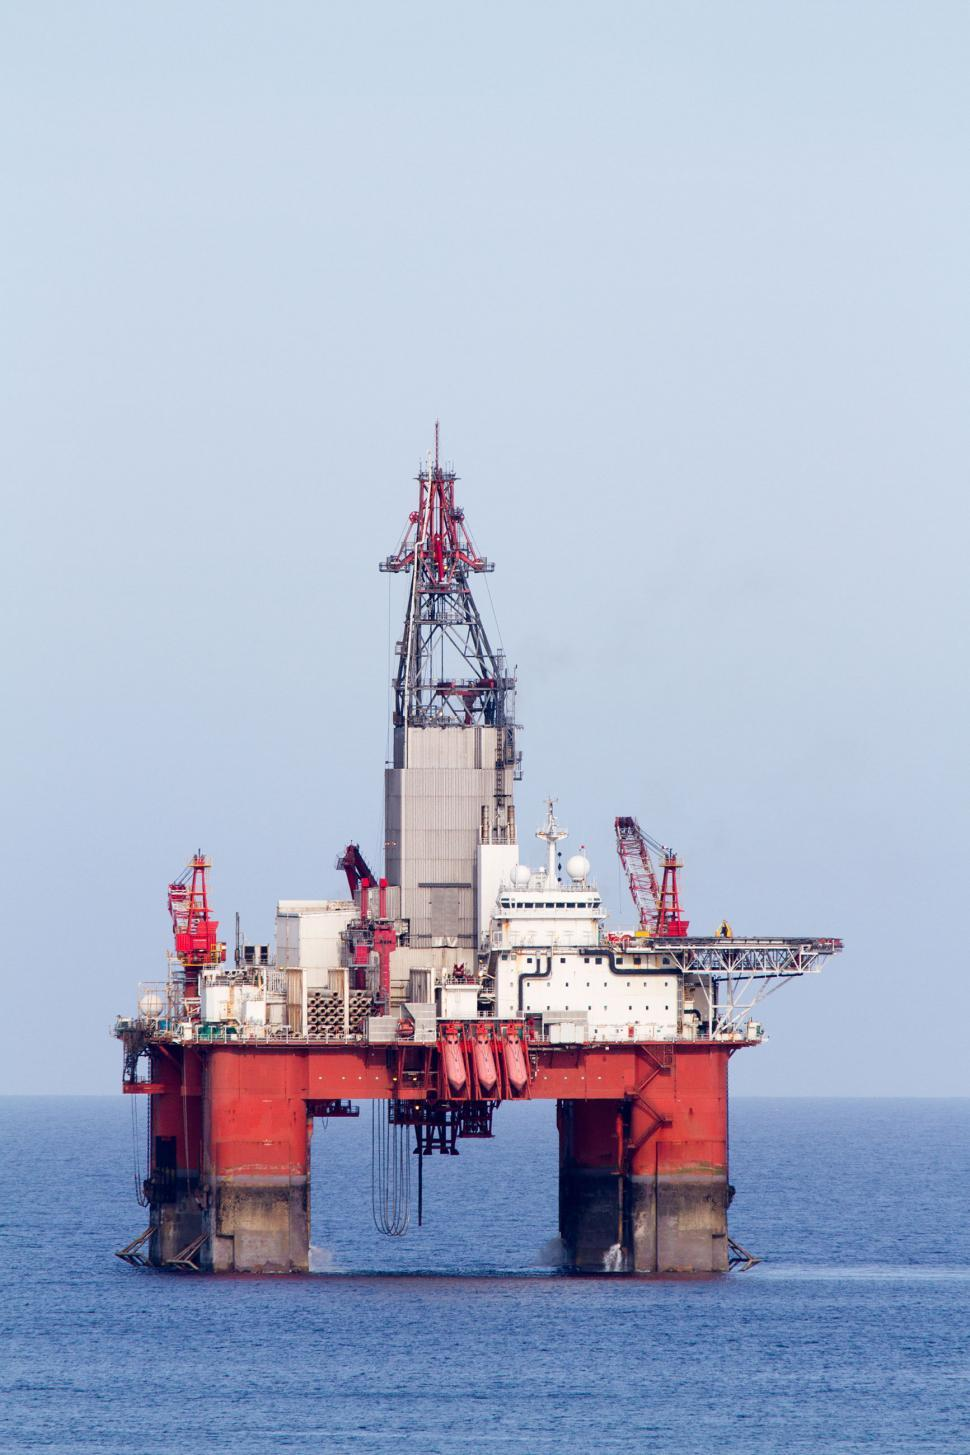 Download Free Stock Photo of Oil and gas drilling platform